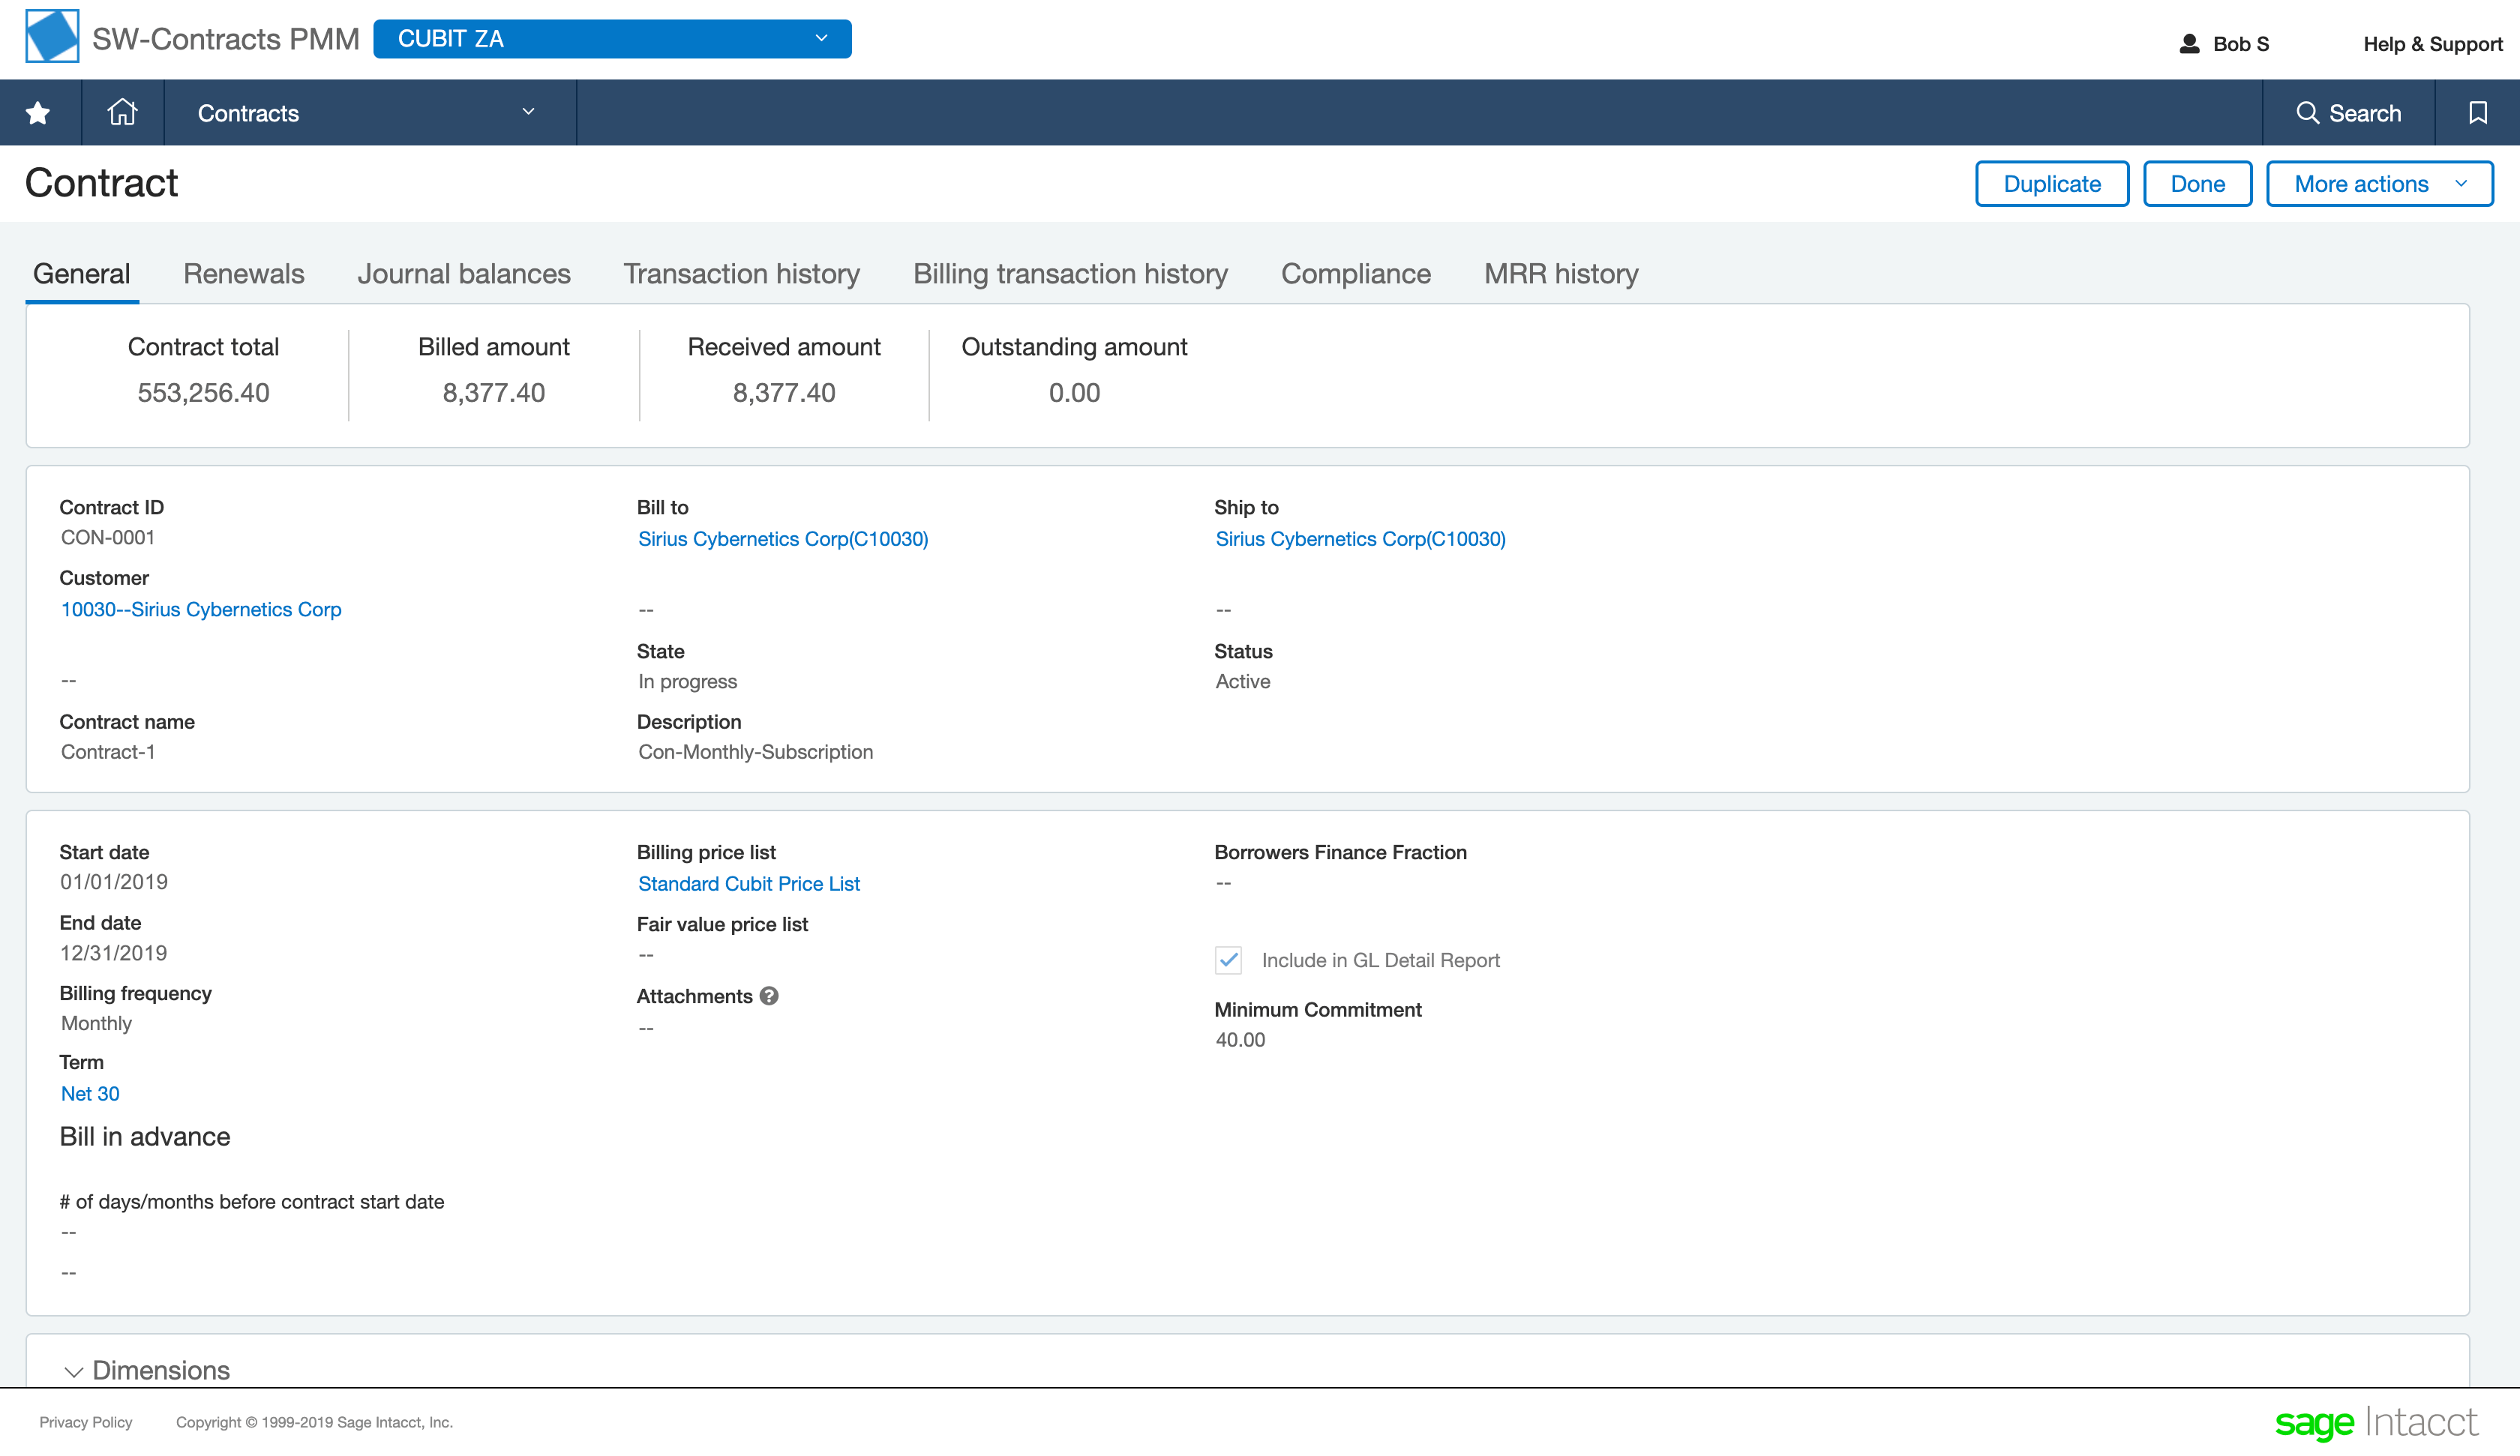 a screenshot of the sage intacct cloud contract revenue management software